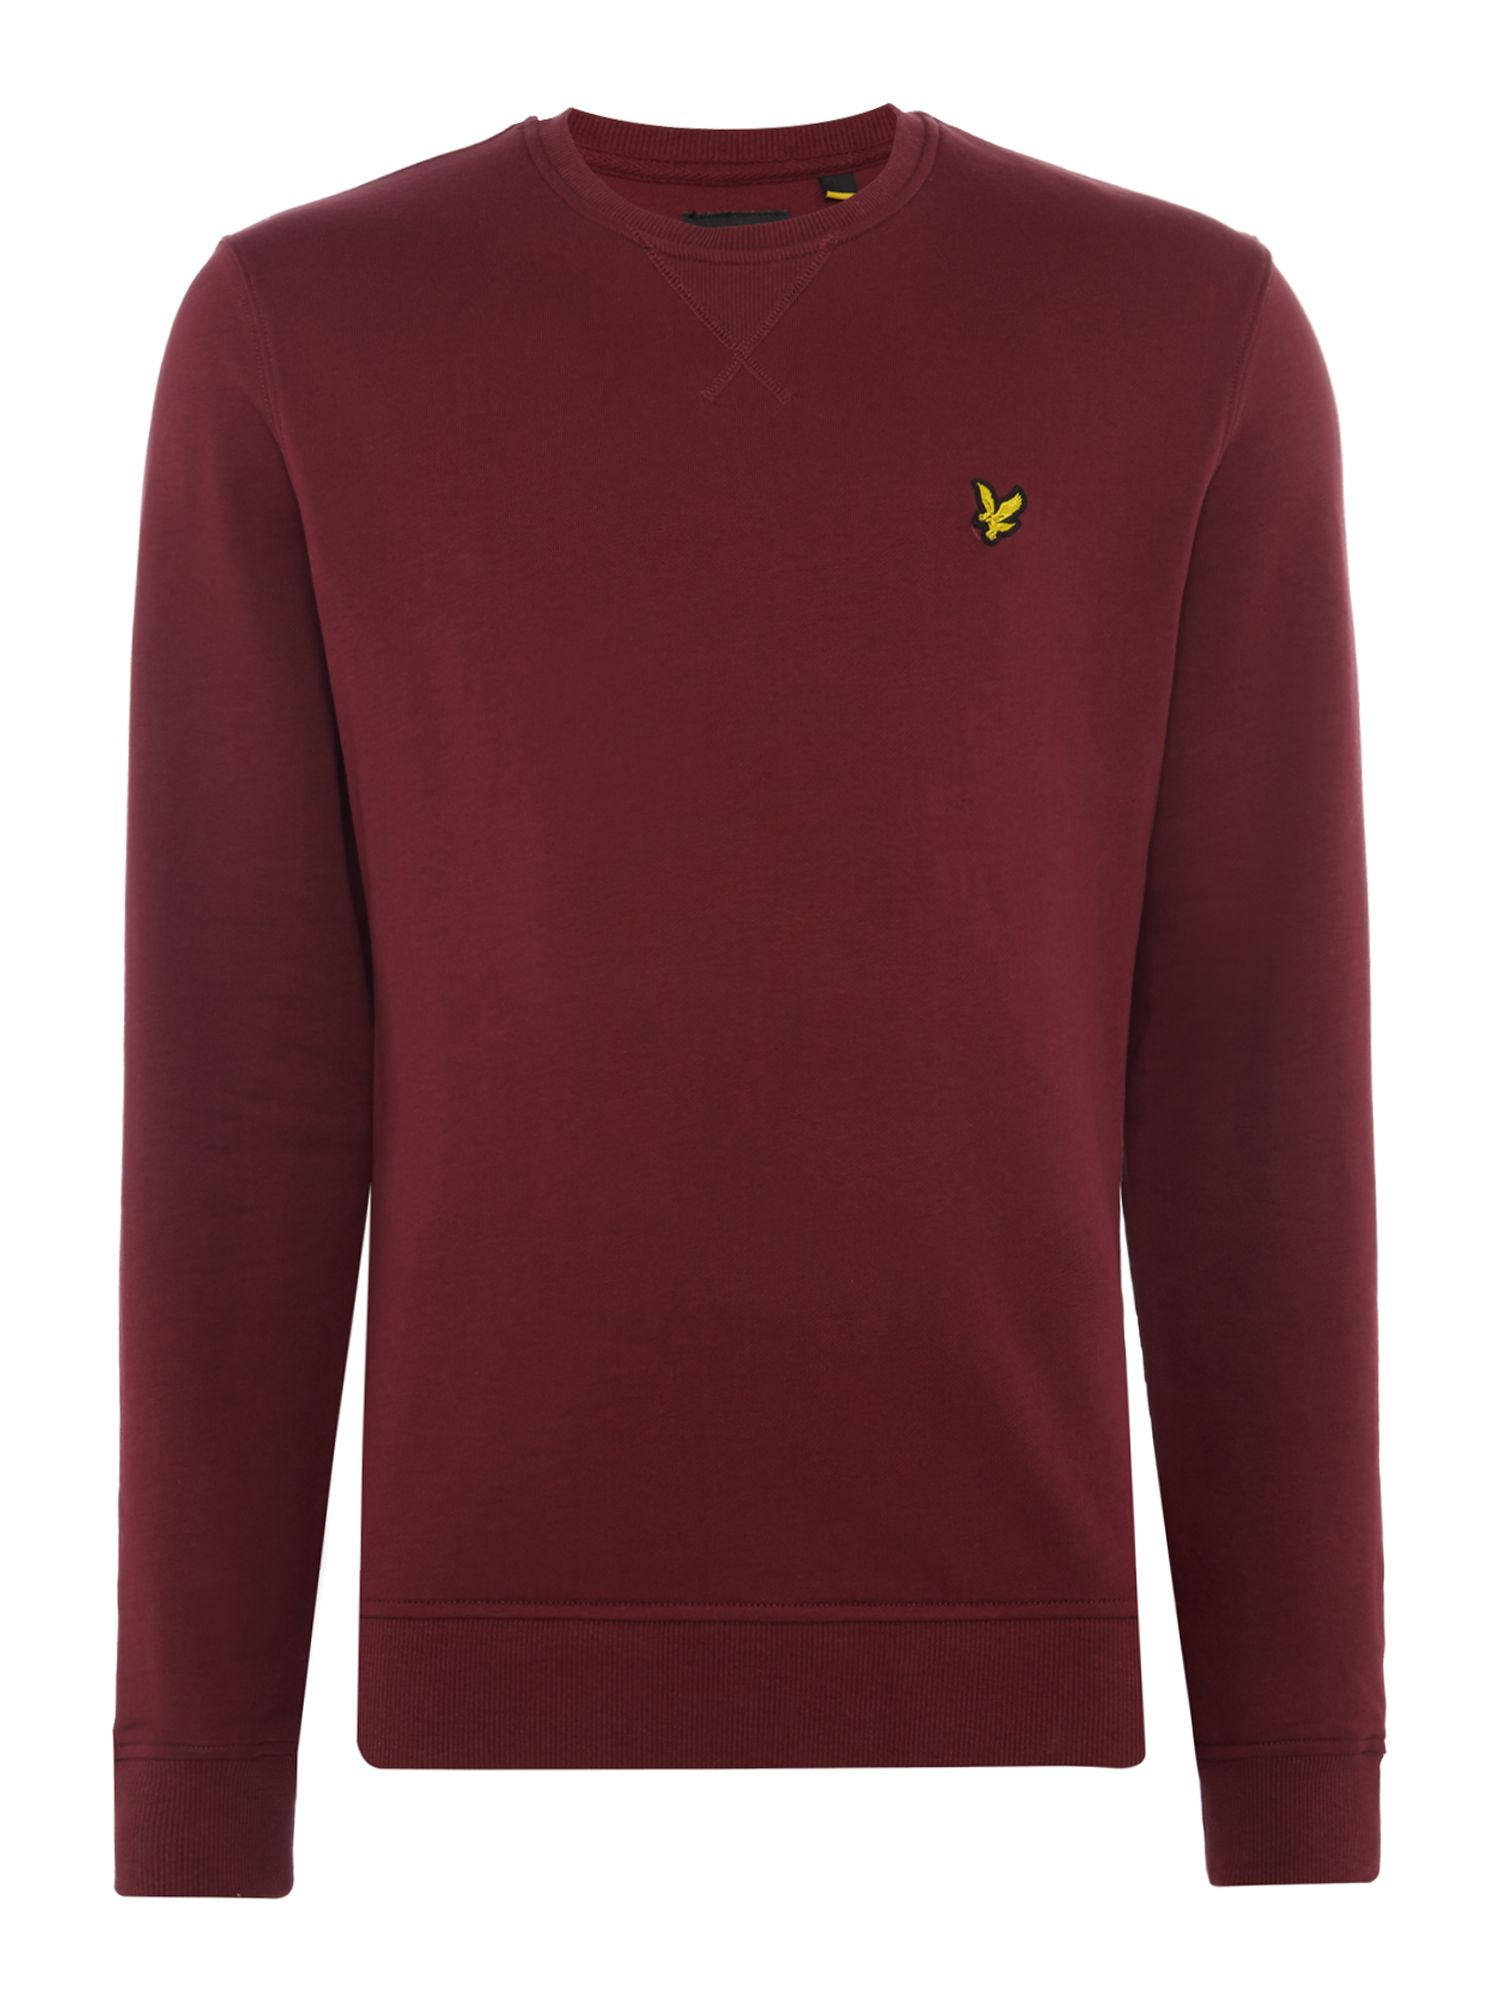 Men's Lyle and Scott Crew Neck Sweatshirt, Claret